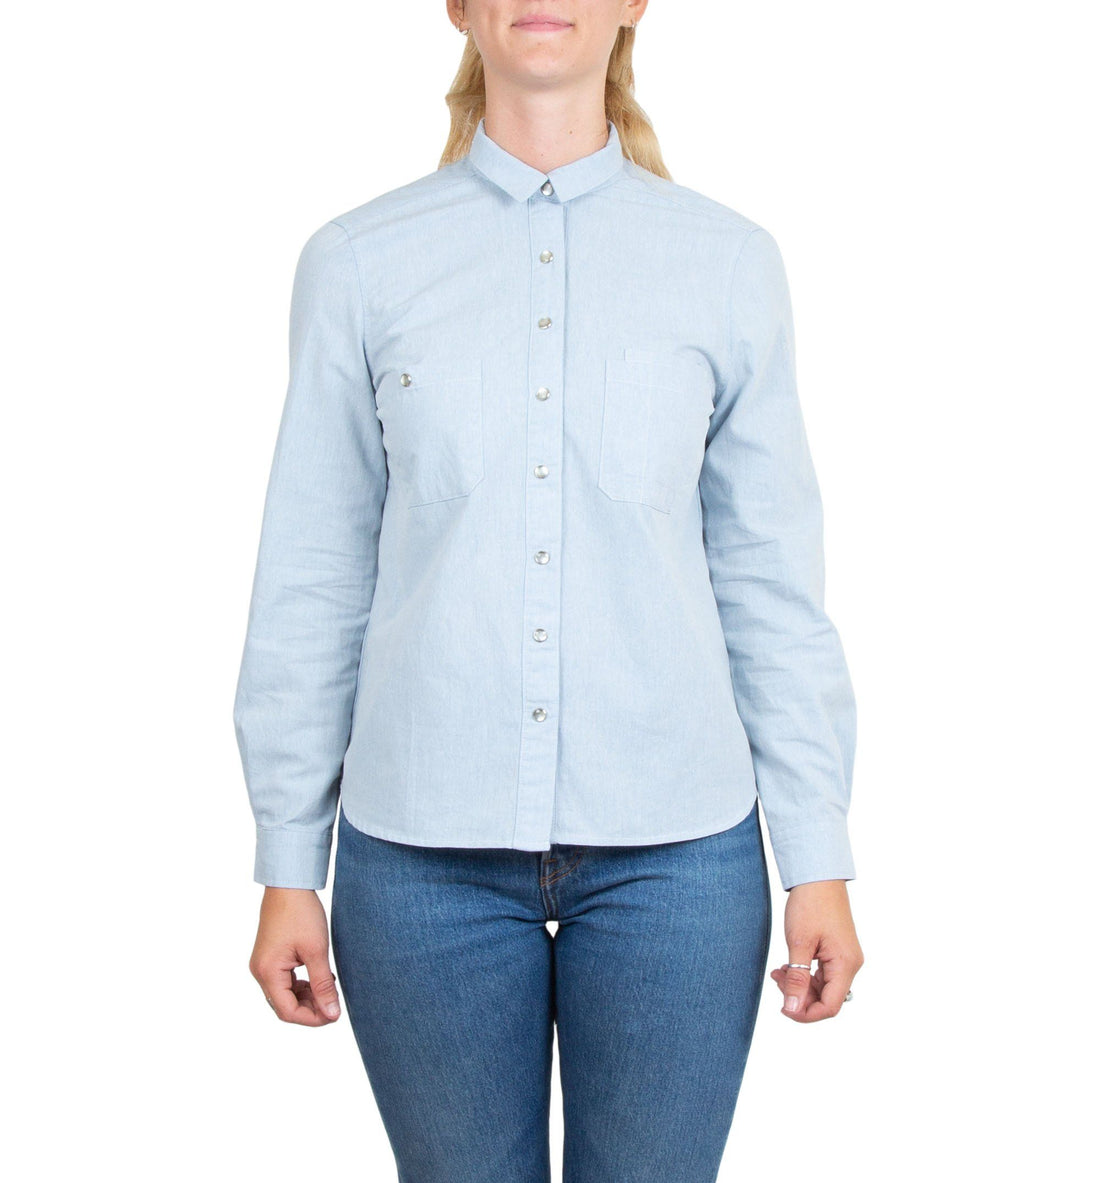 Women's Field Shirt - Tops - Iron and Resin